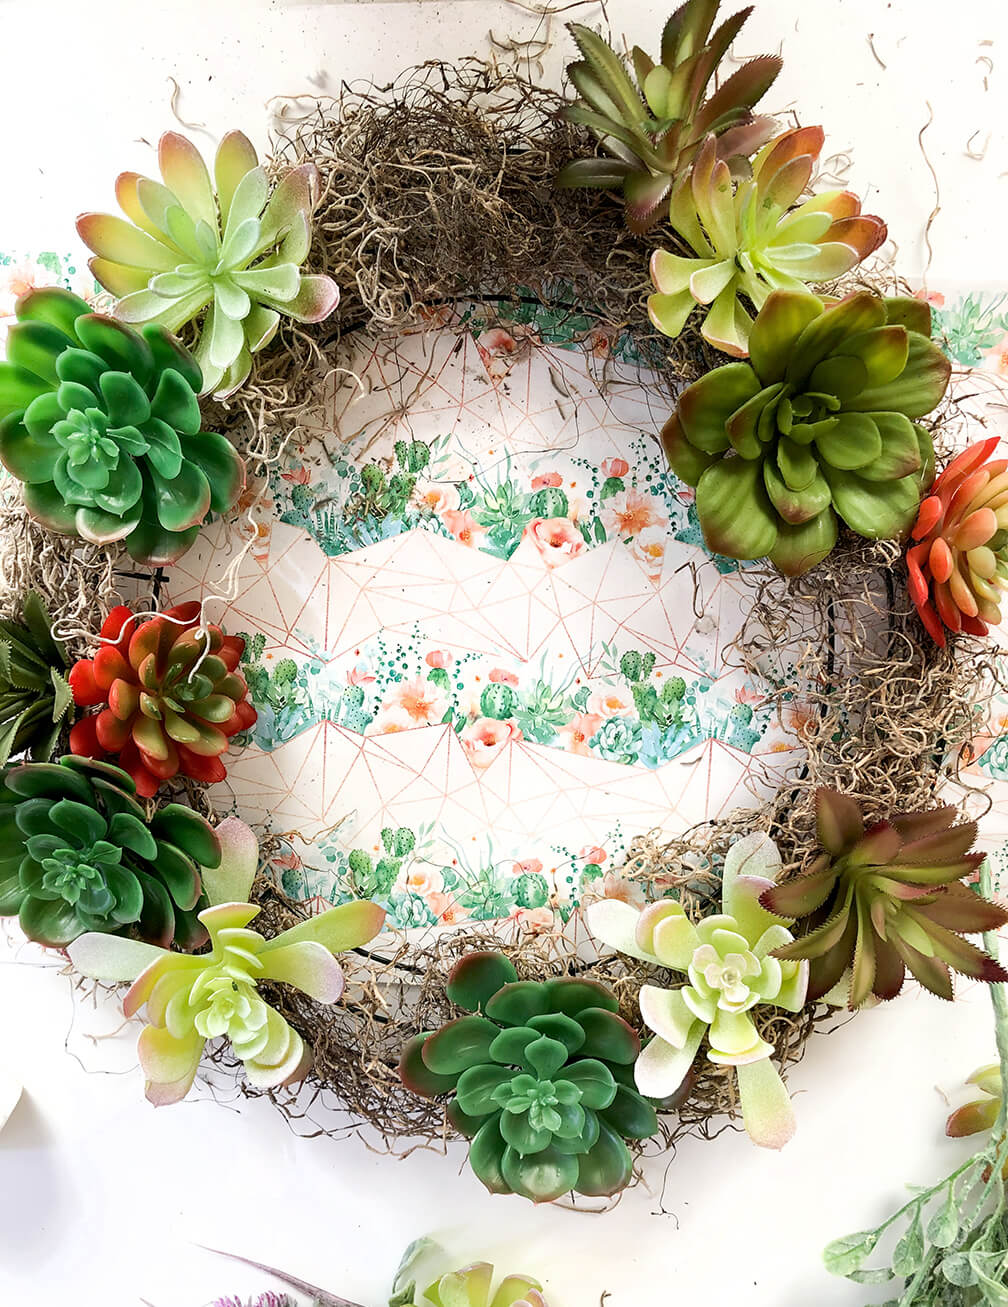 dollar store succulent wreath tutorial showing where to add color